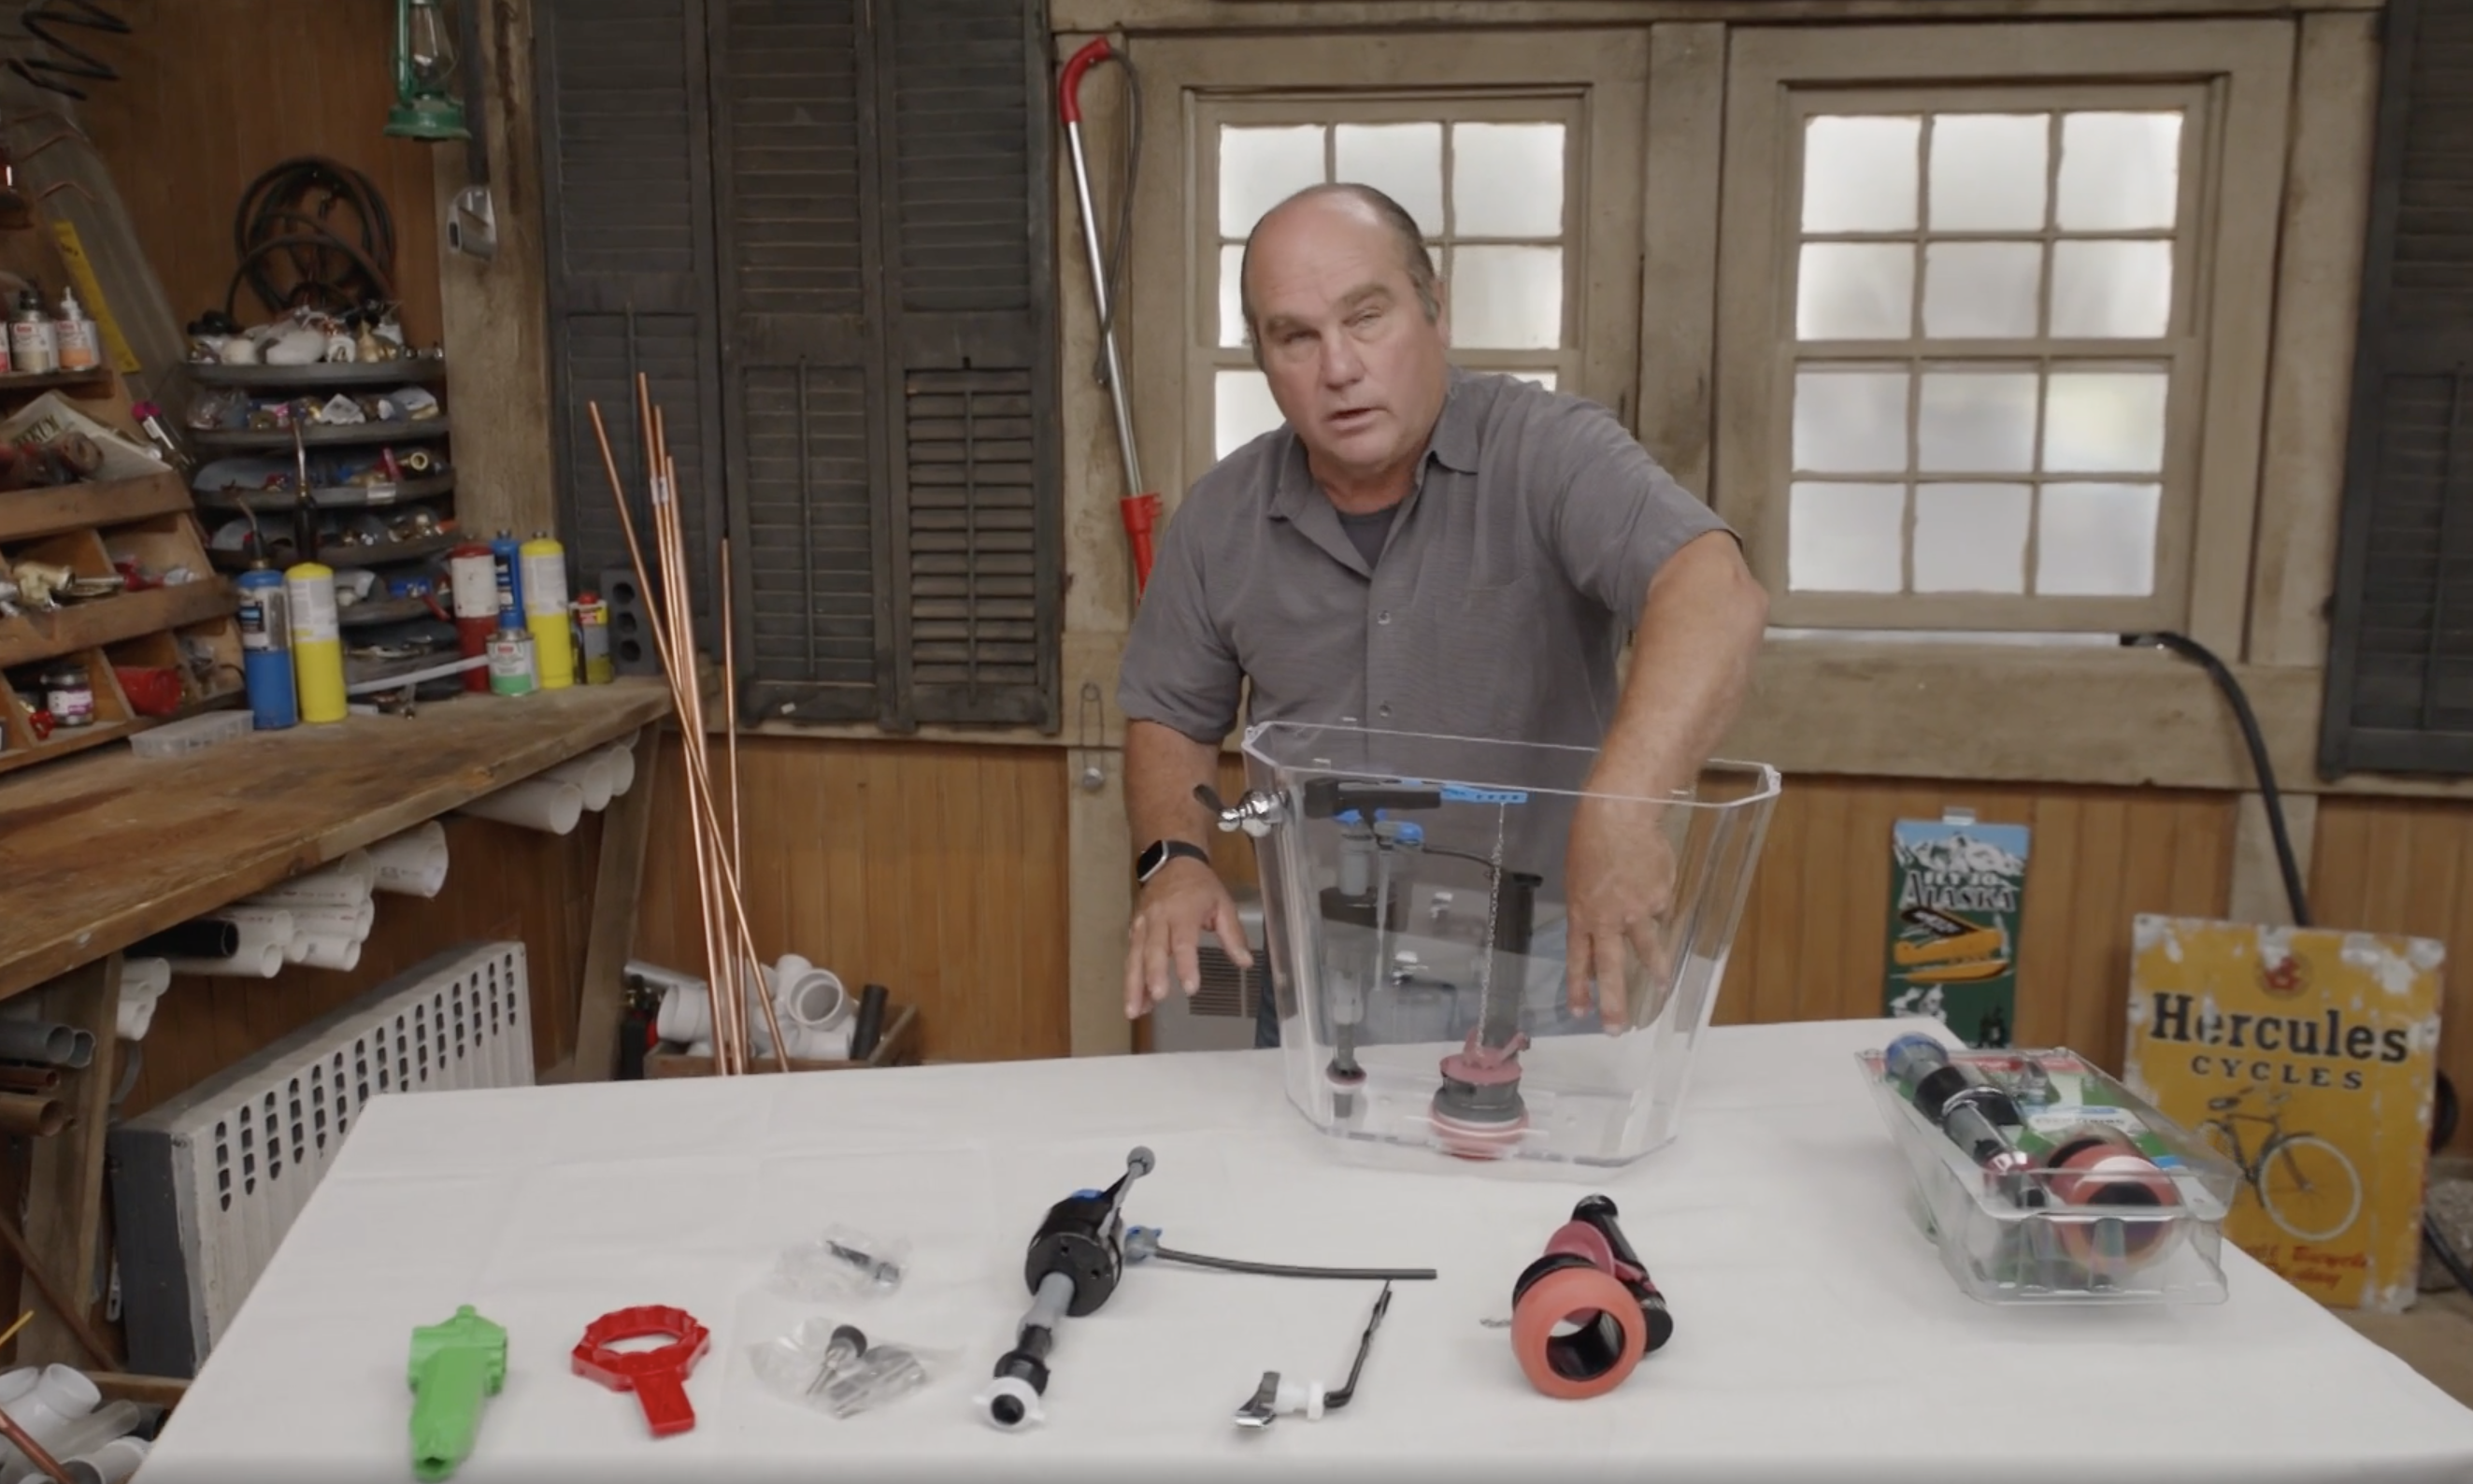 Richard Trethewey demonstrates how to fix toilet problems with a repair kit from Fluidmaster.